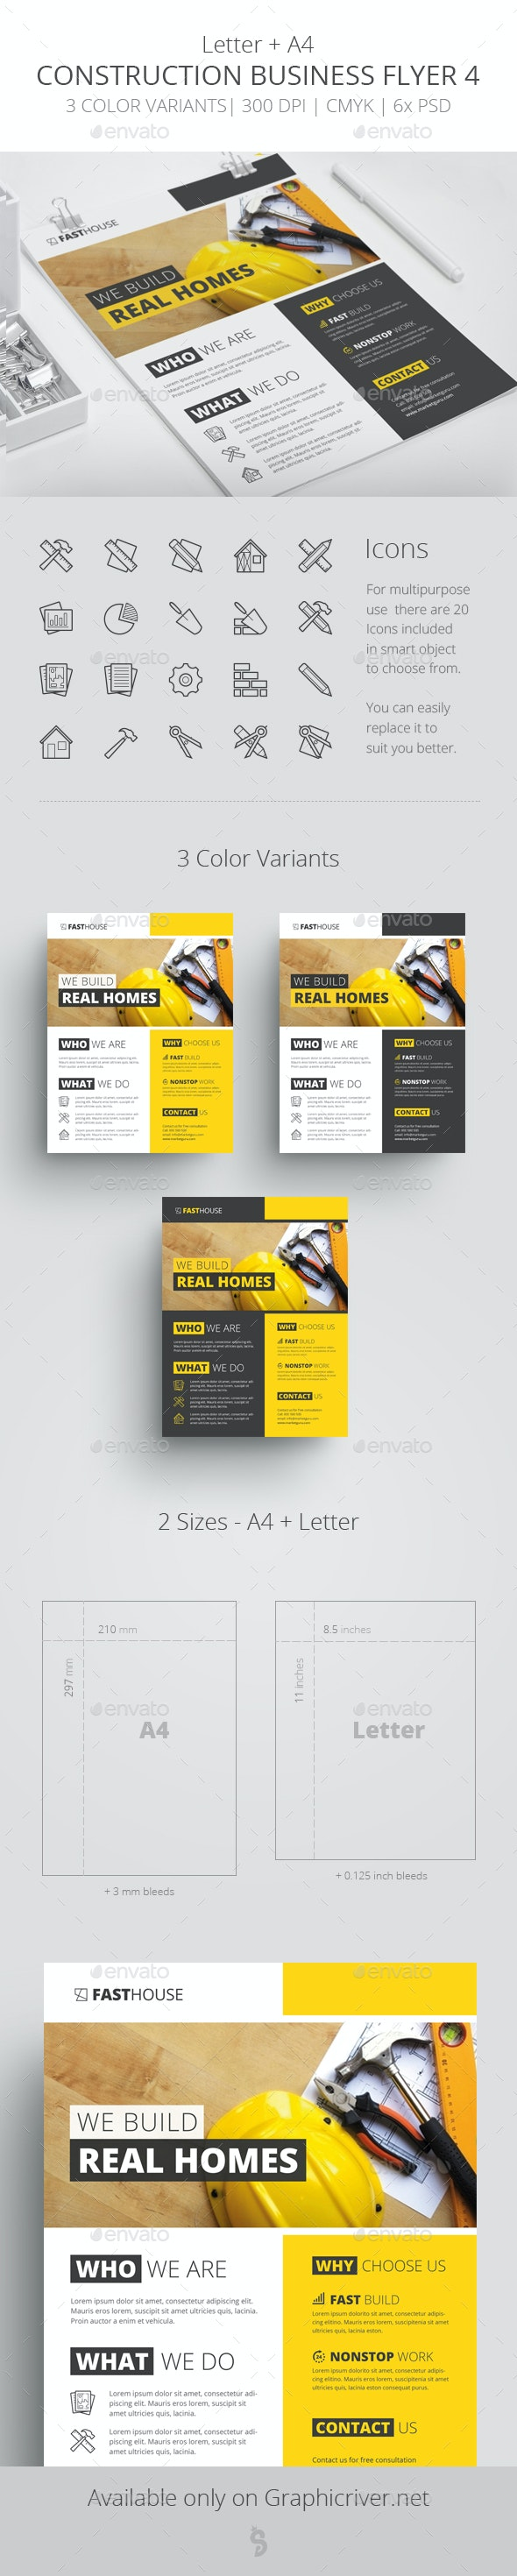 Construction Business Flyer 4 - Letter + A4 - Corporate Flyers